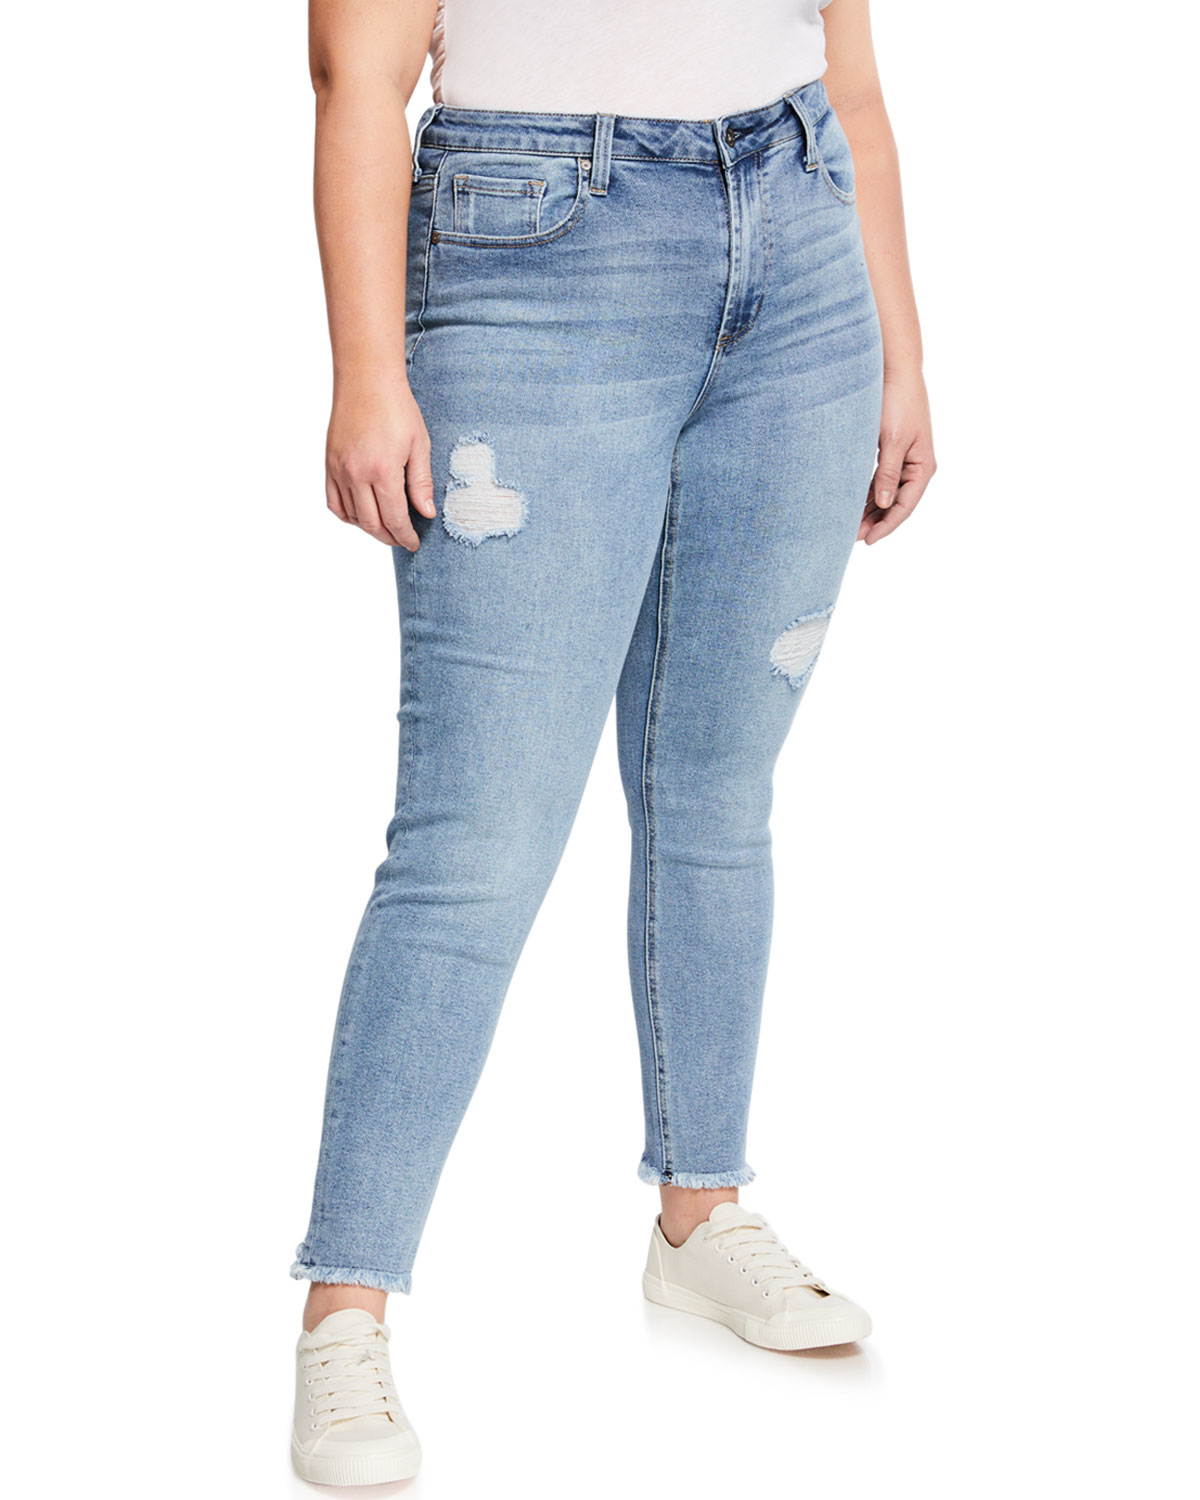 Gainesville Luxury Designer Home: Max Studio Plus High-Rise Distressed Ankle Skinny Jeans